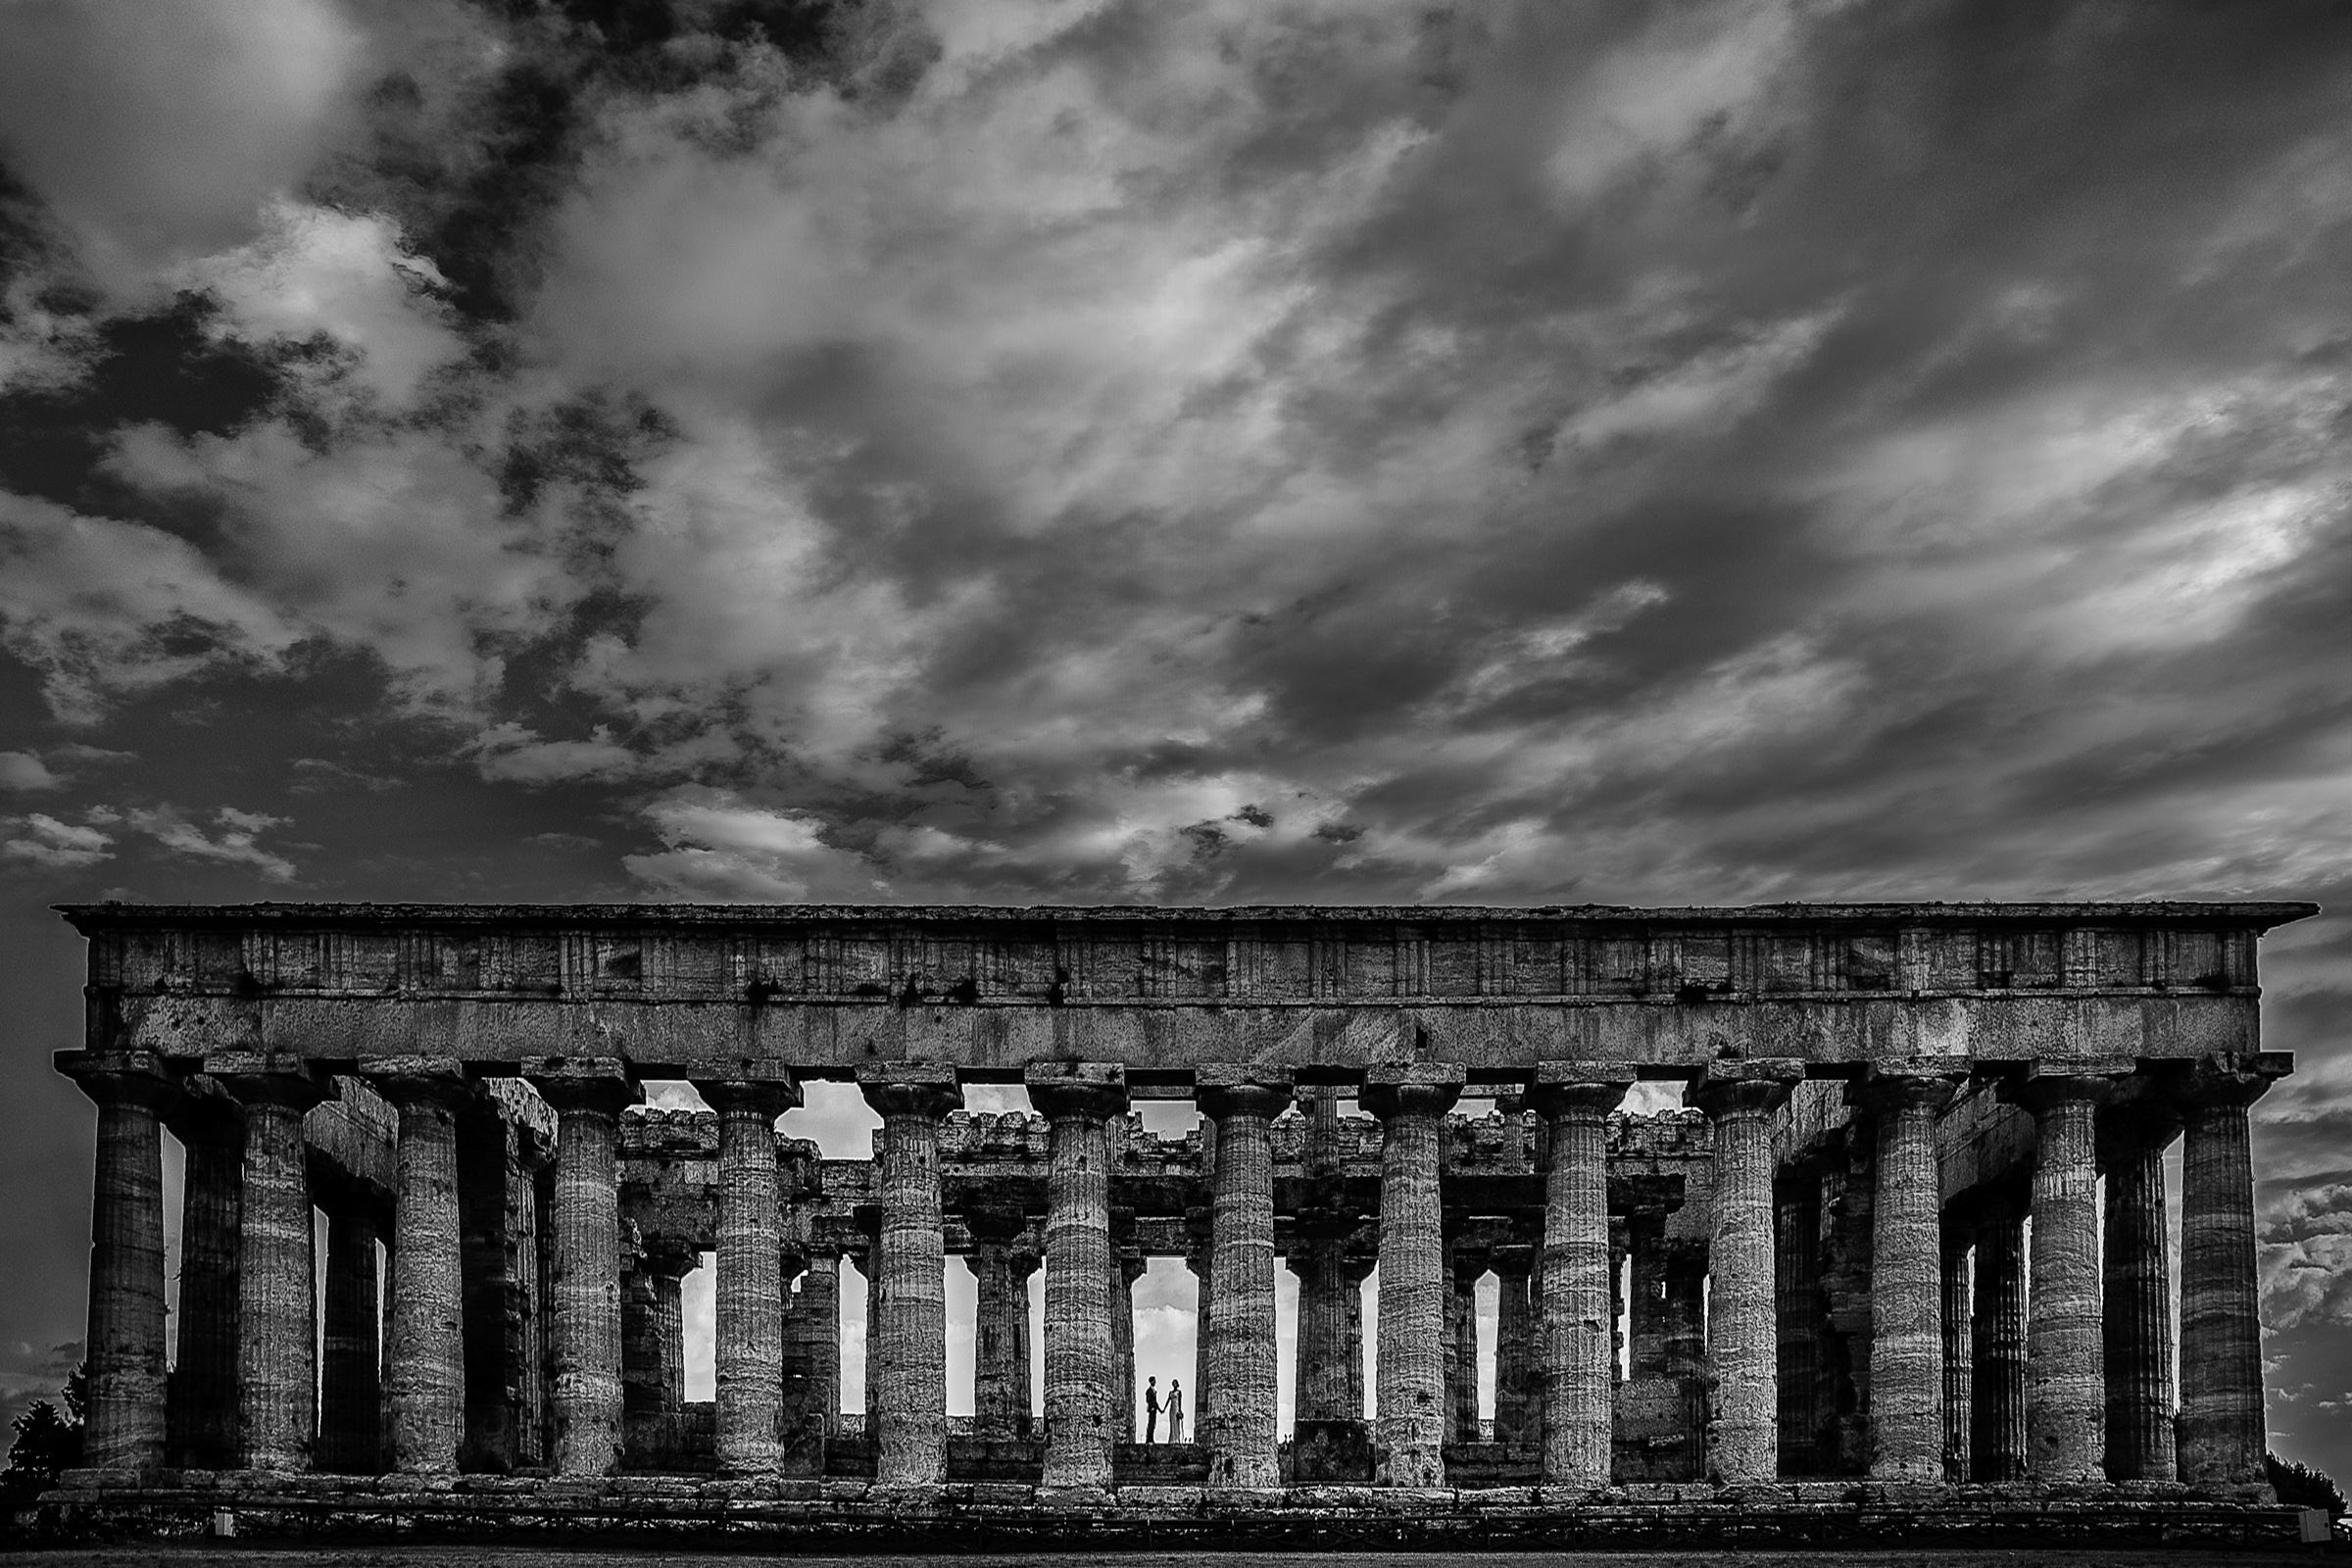 Couple silhouette at roman temple under stormy skies - photo by D2 Photography